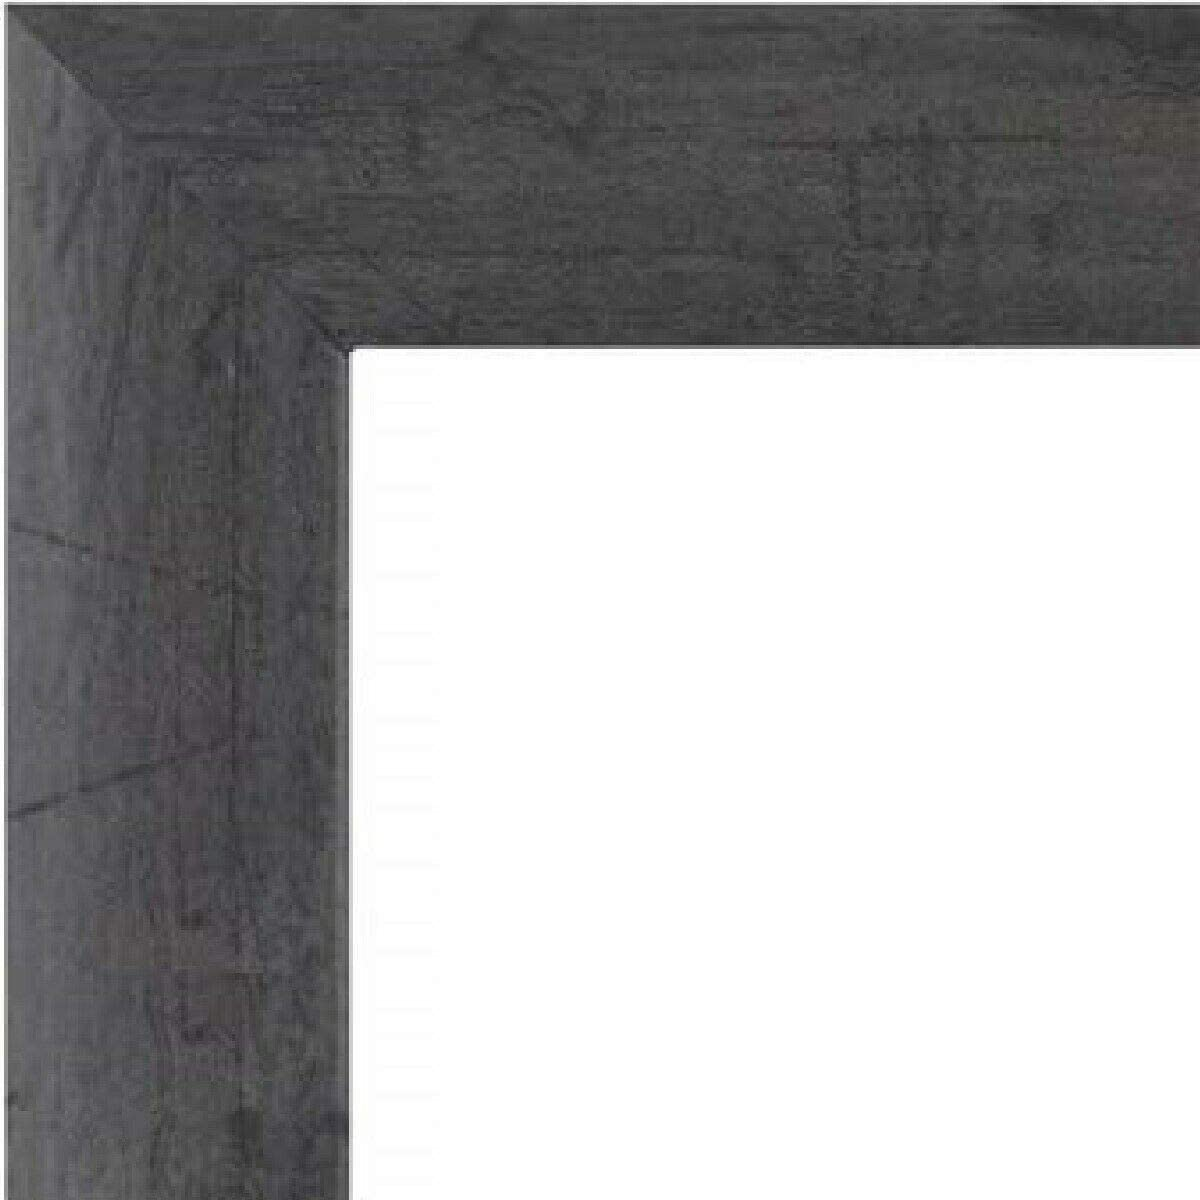 US Art Frames 13x19-Inch Picture Frame, Distressed Barnwood Finish, 1 Inch Wide Nugget Moulding, Grey Wood Composite MDF Wall Decor Poster Frame